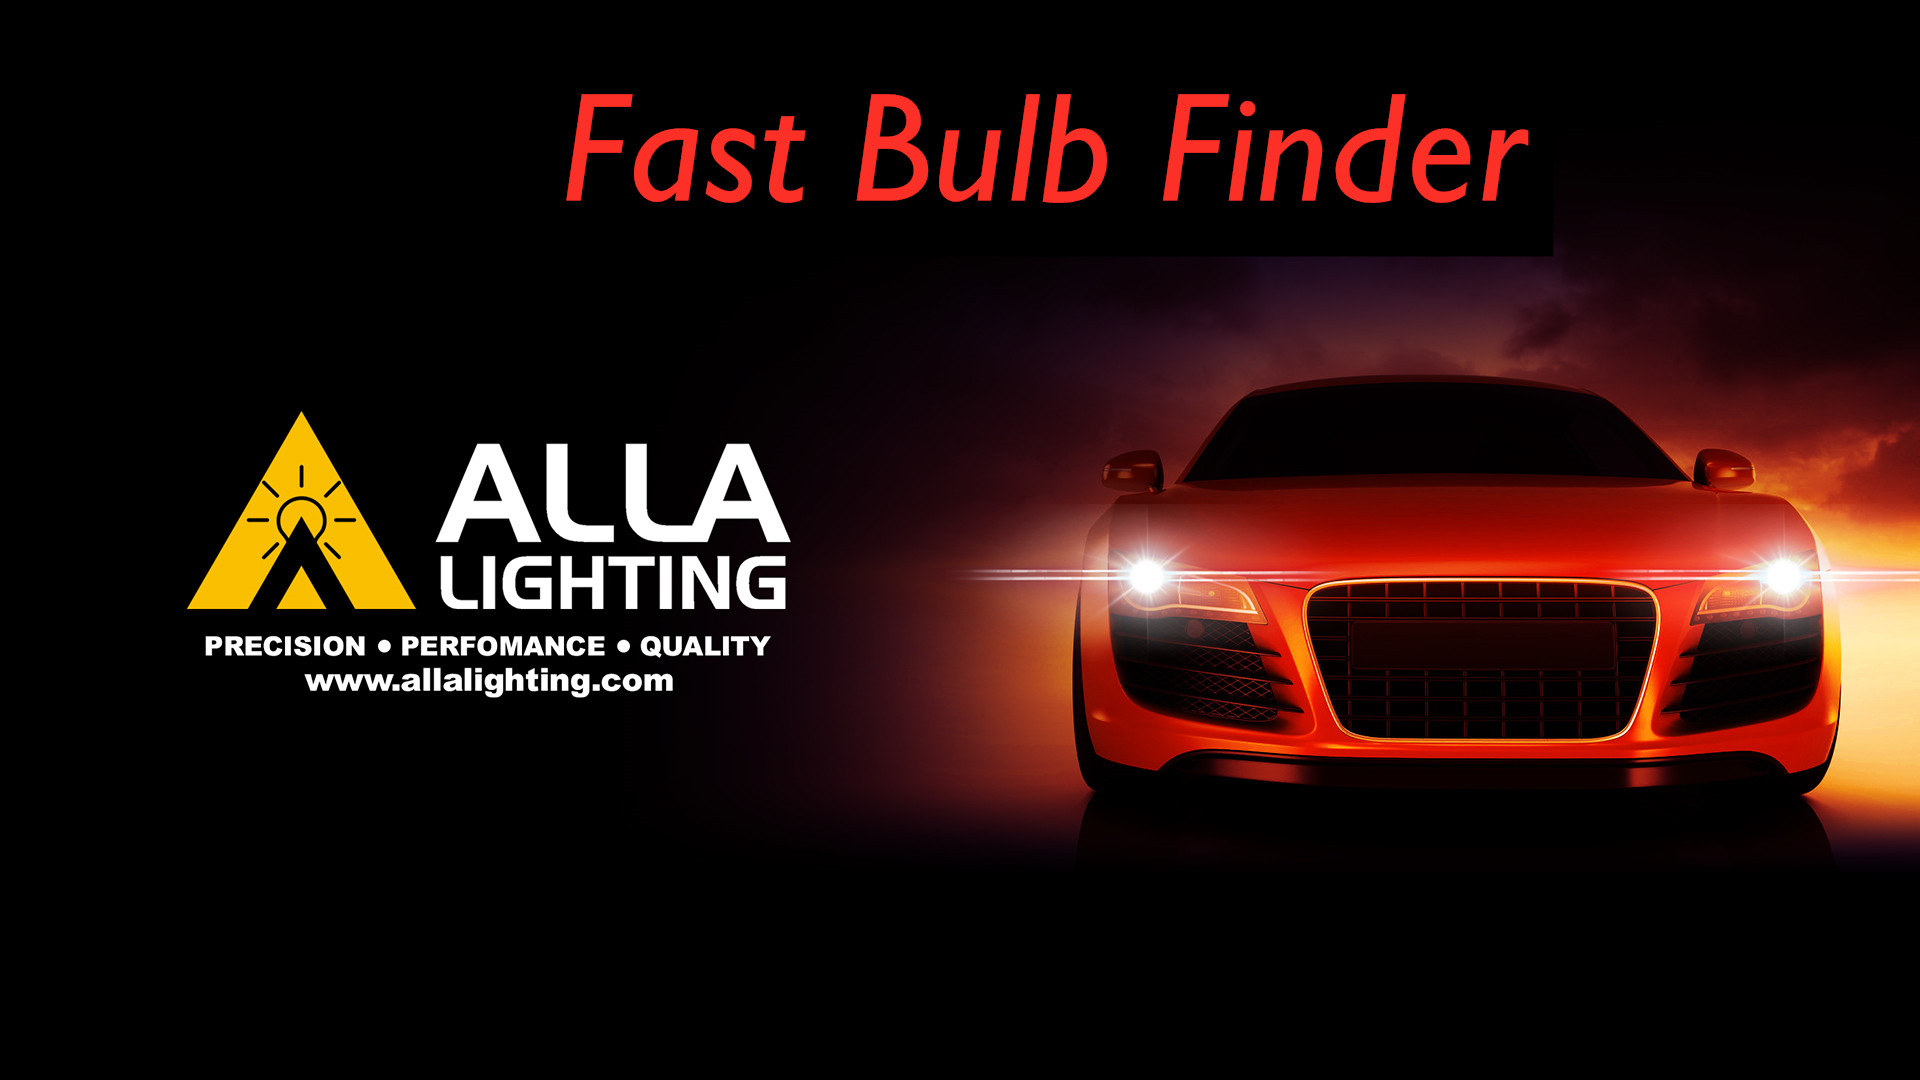 Alla Lighting LED Light Bulbs Category Headlight Fog Brake Stop Signal